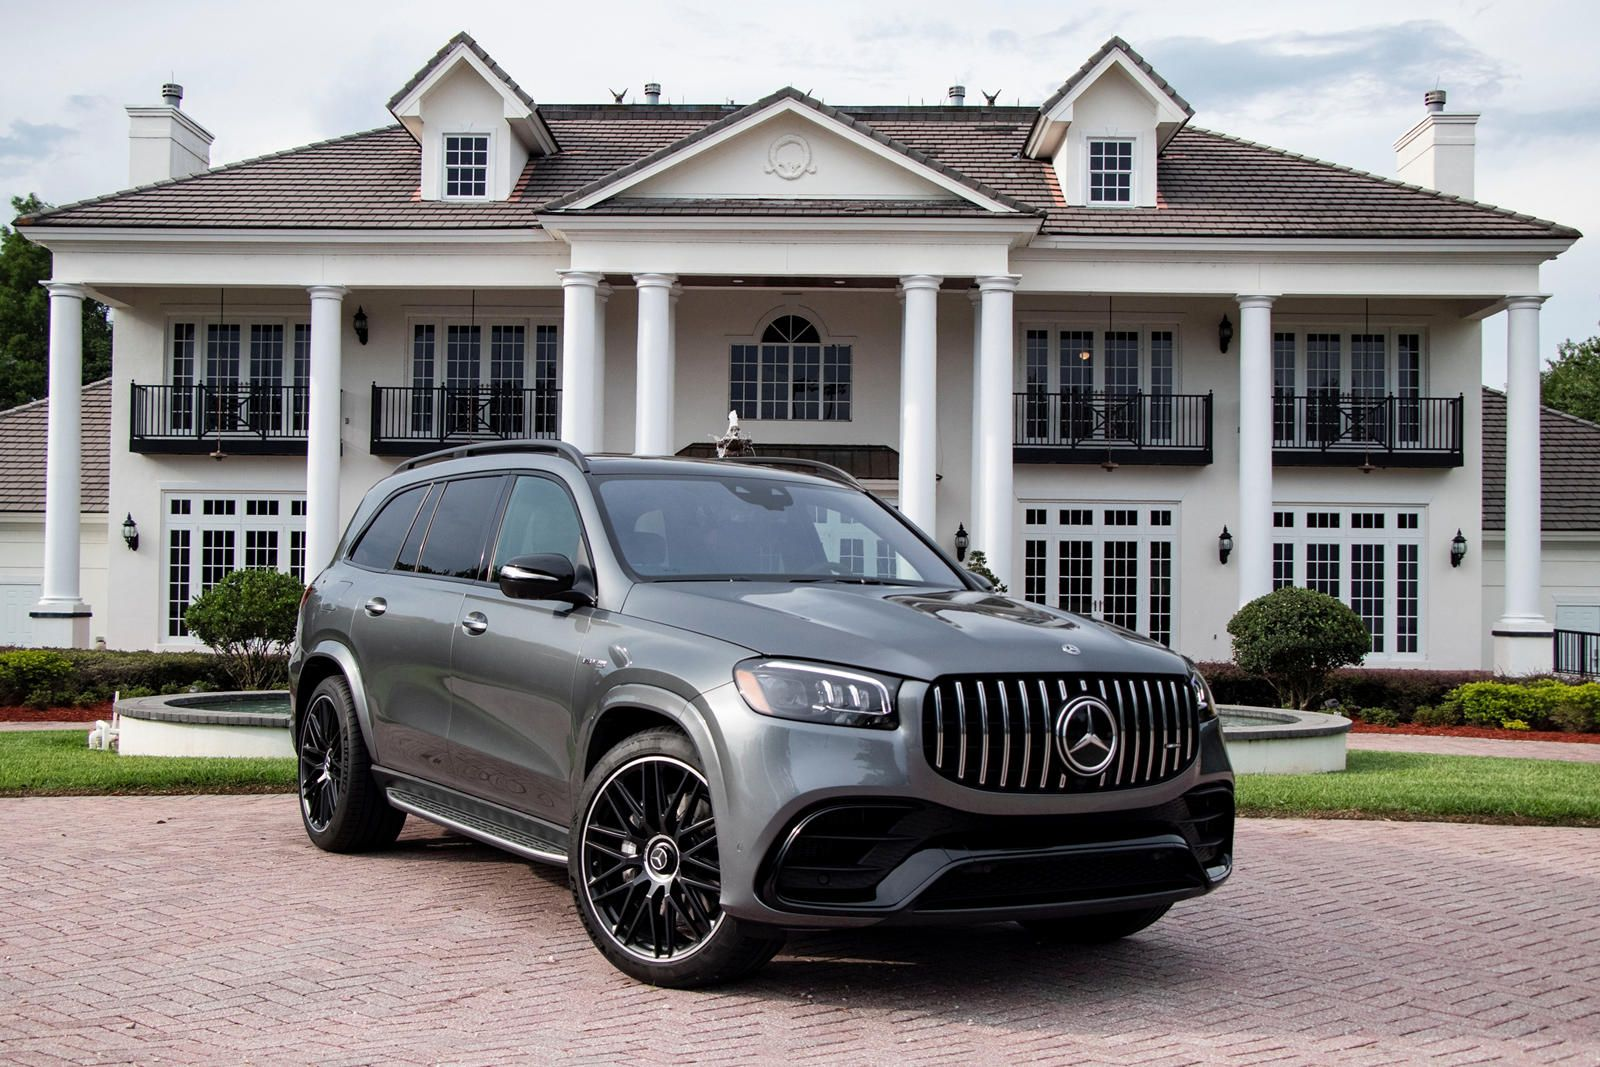 5 Reasons Why The 2021 Mercedes-AMG GLS63 Is The Ultimate ...